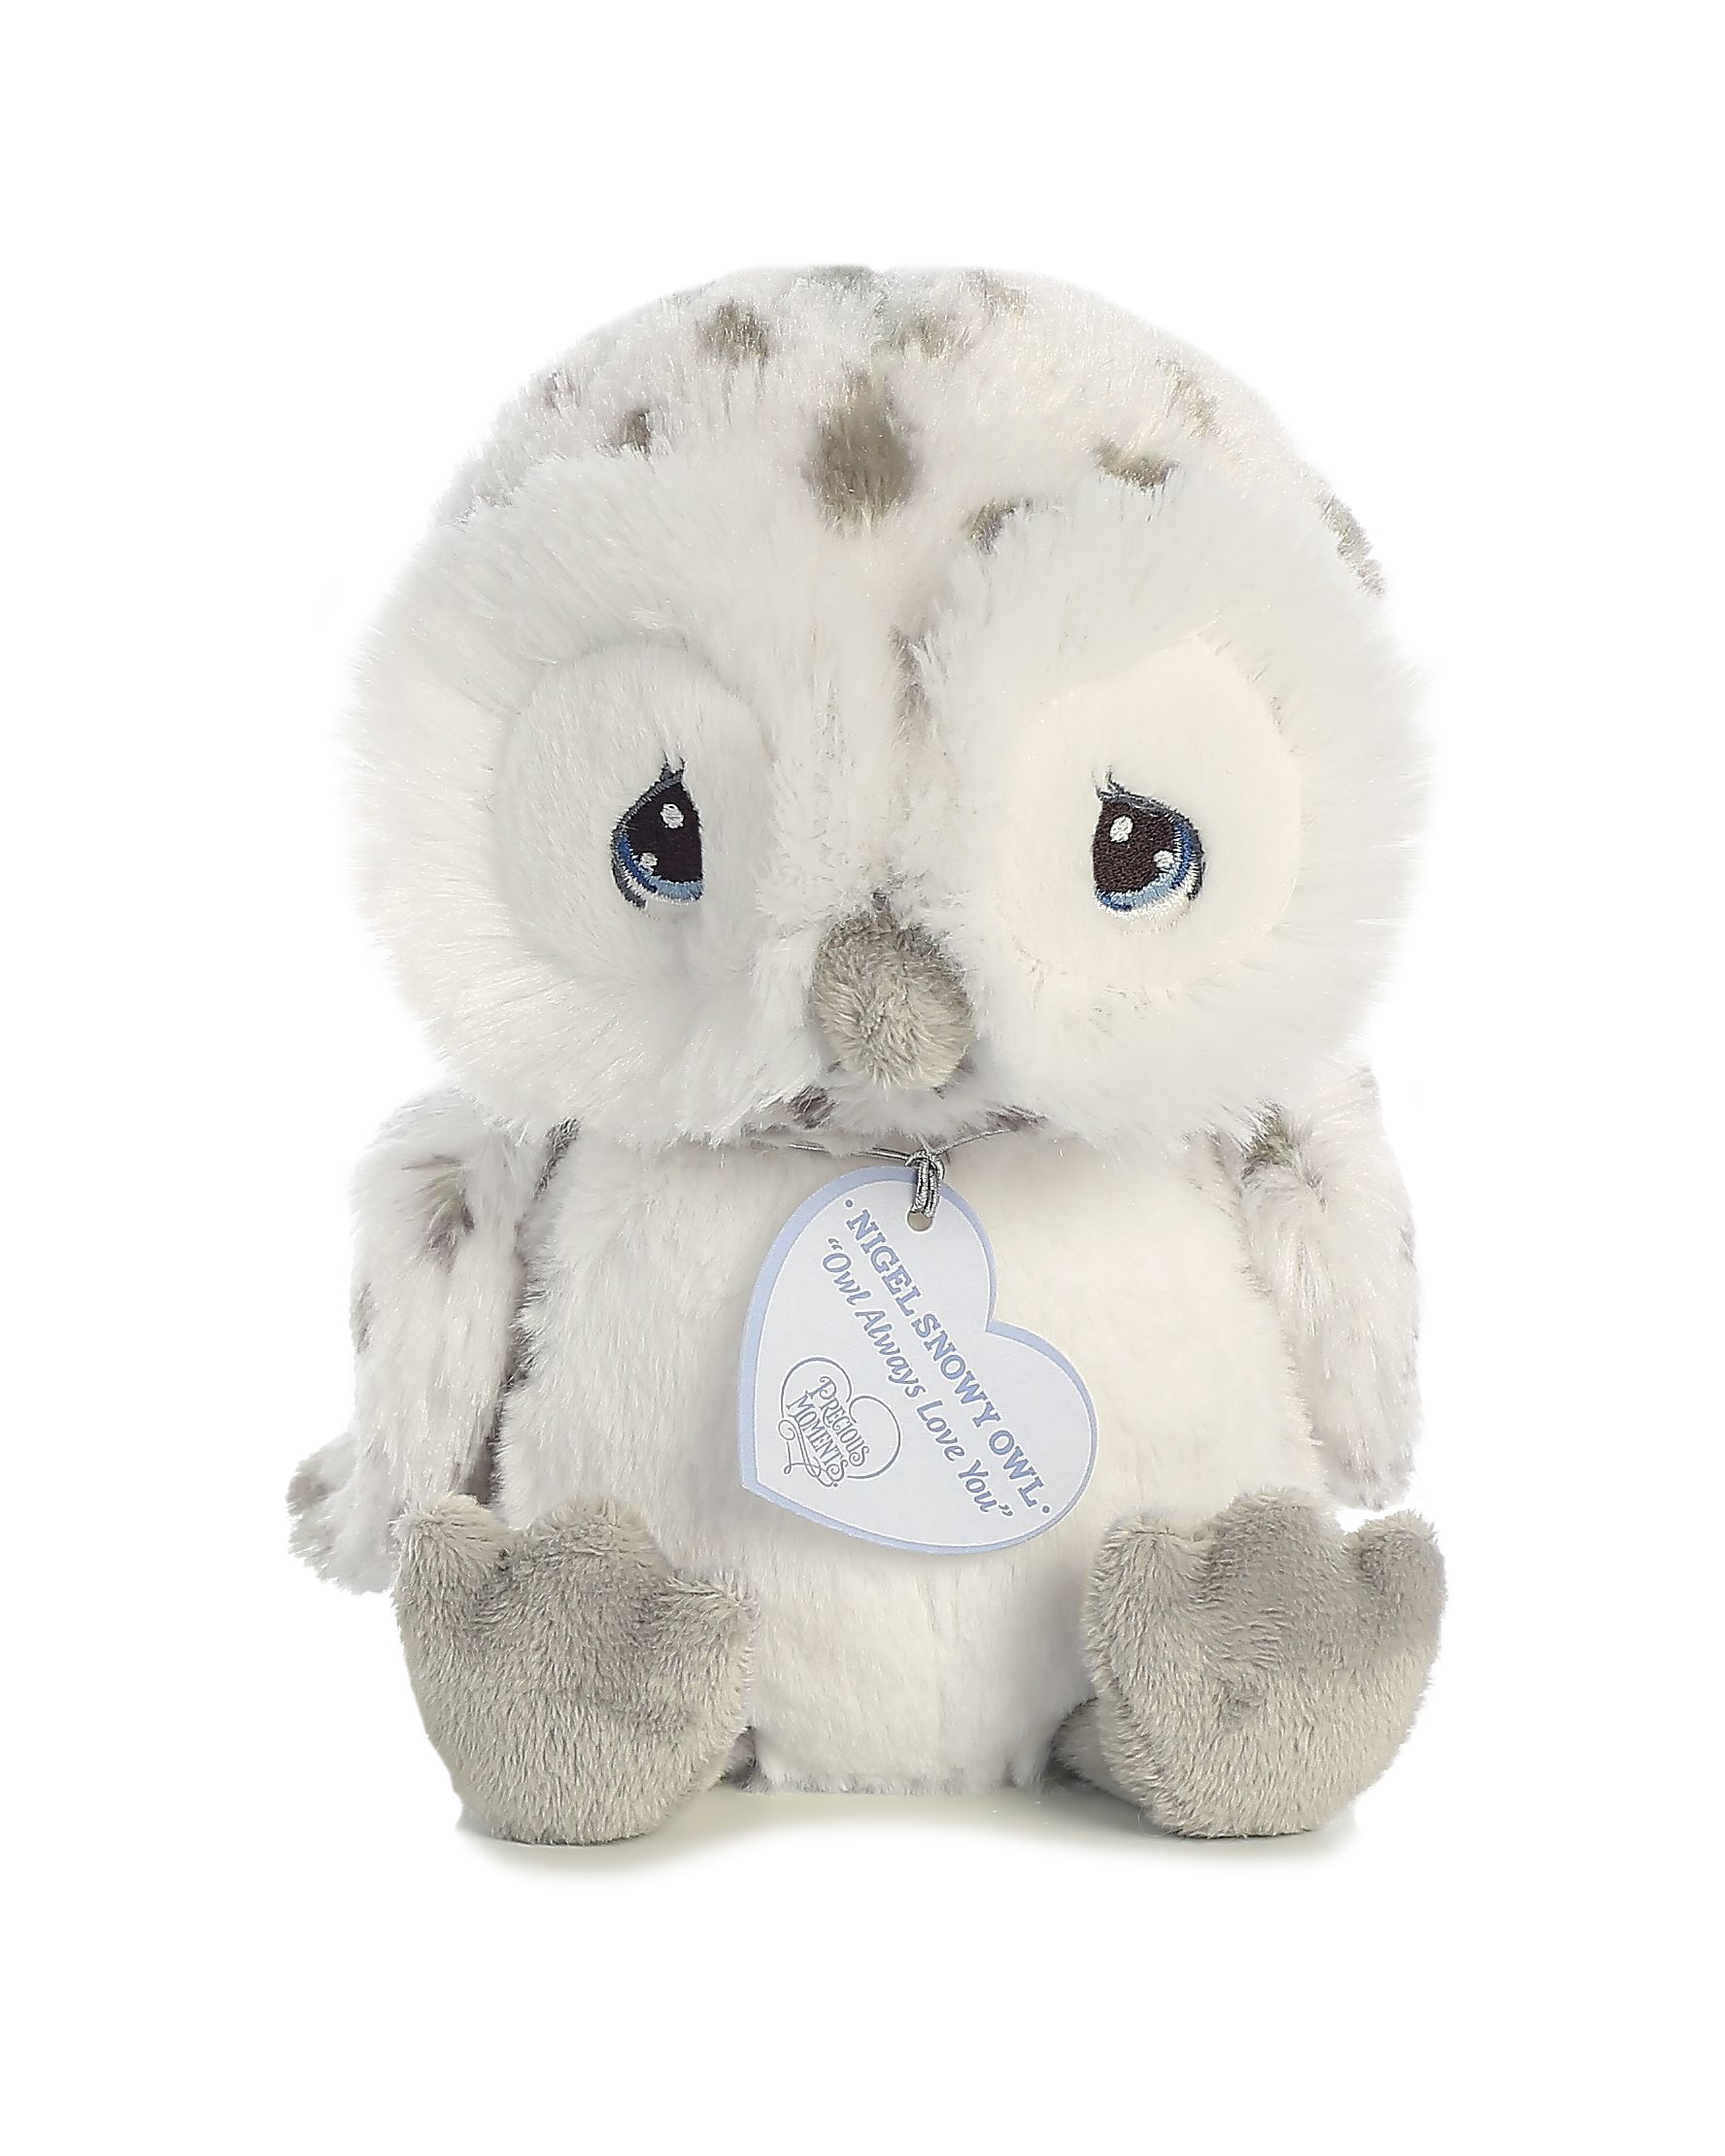 Nigel Snow Owl 8 inch Baby Stuffed Animal by Precious Moments (15712) by Precious Moments